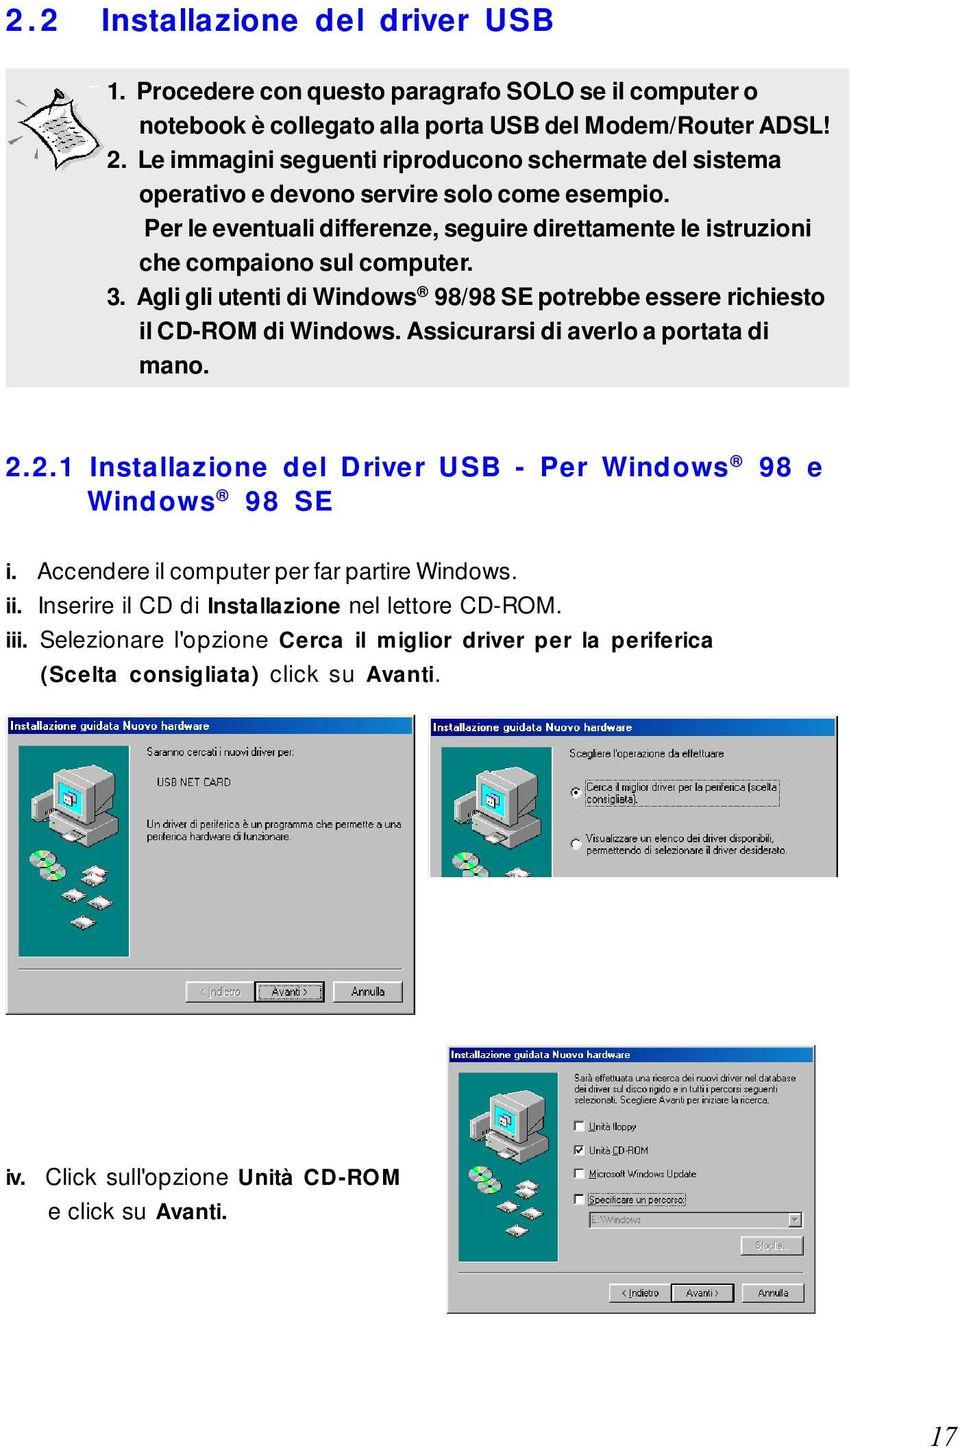 Agli gli utenti di Windows 98/98 SE potrebbe essere richiesto il CD-ROM di Windows. Assicurarsi di averlo a portata di mano. 2.2.1 Installazione del Driver USB - Per Windows 98 e Windows 98 SE i.